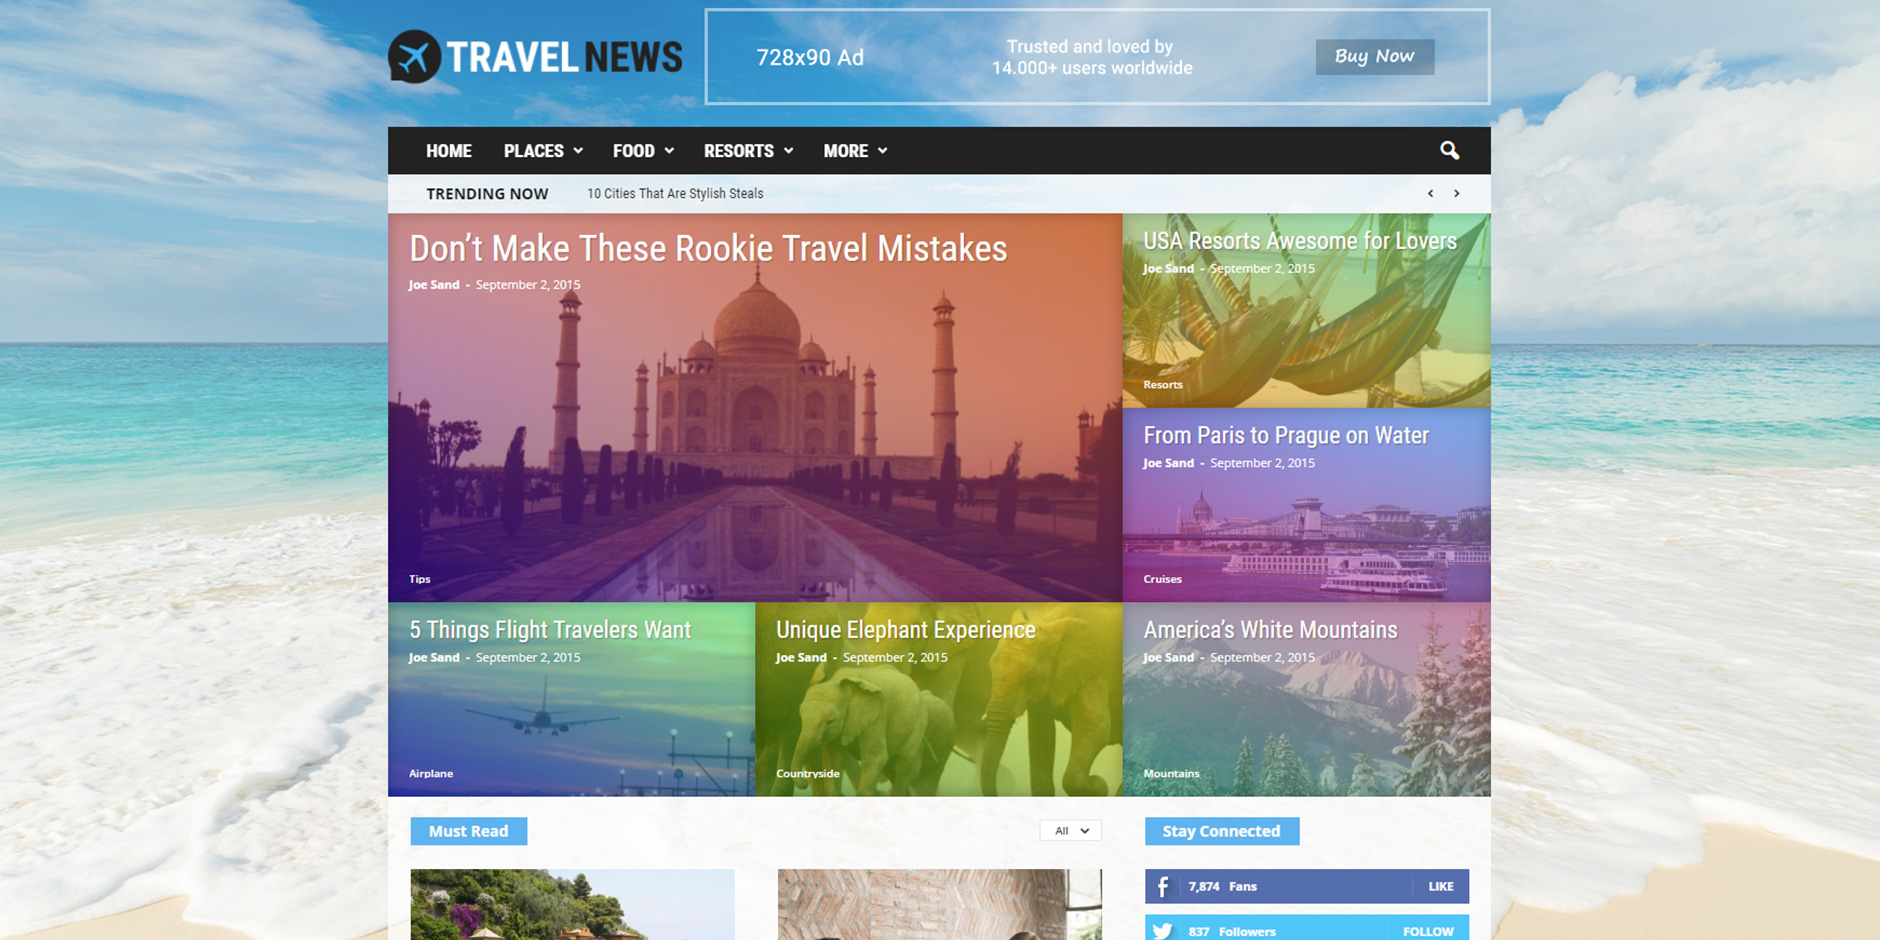 Newsmag_Travel_News_Demo